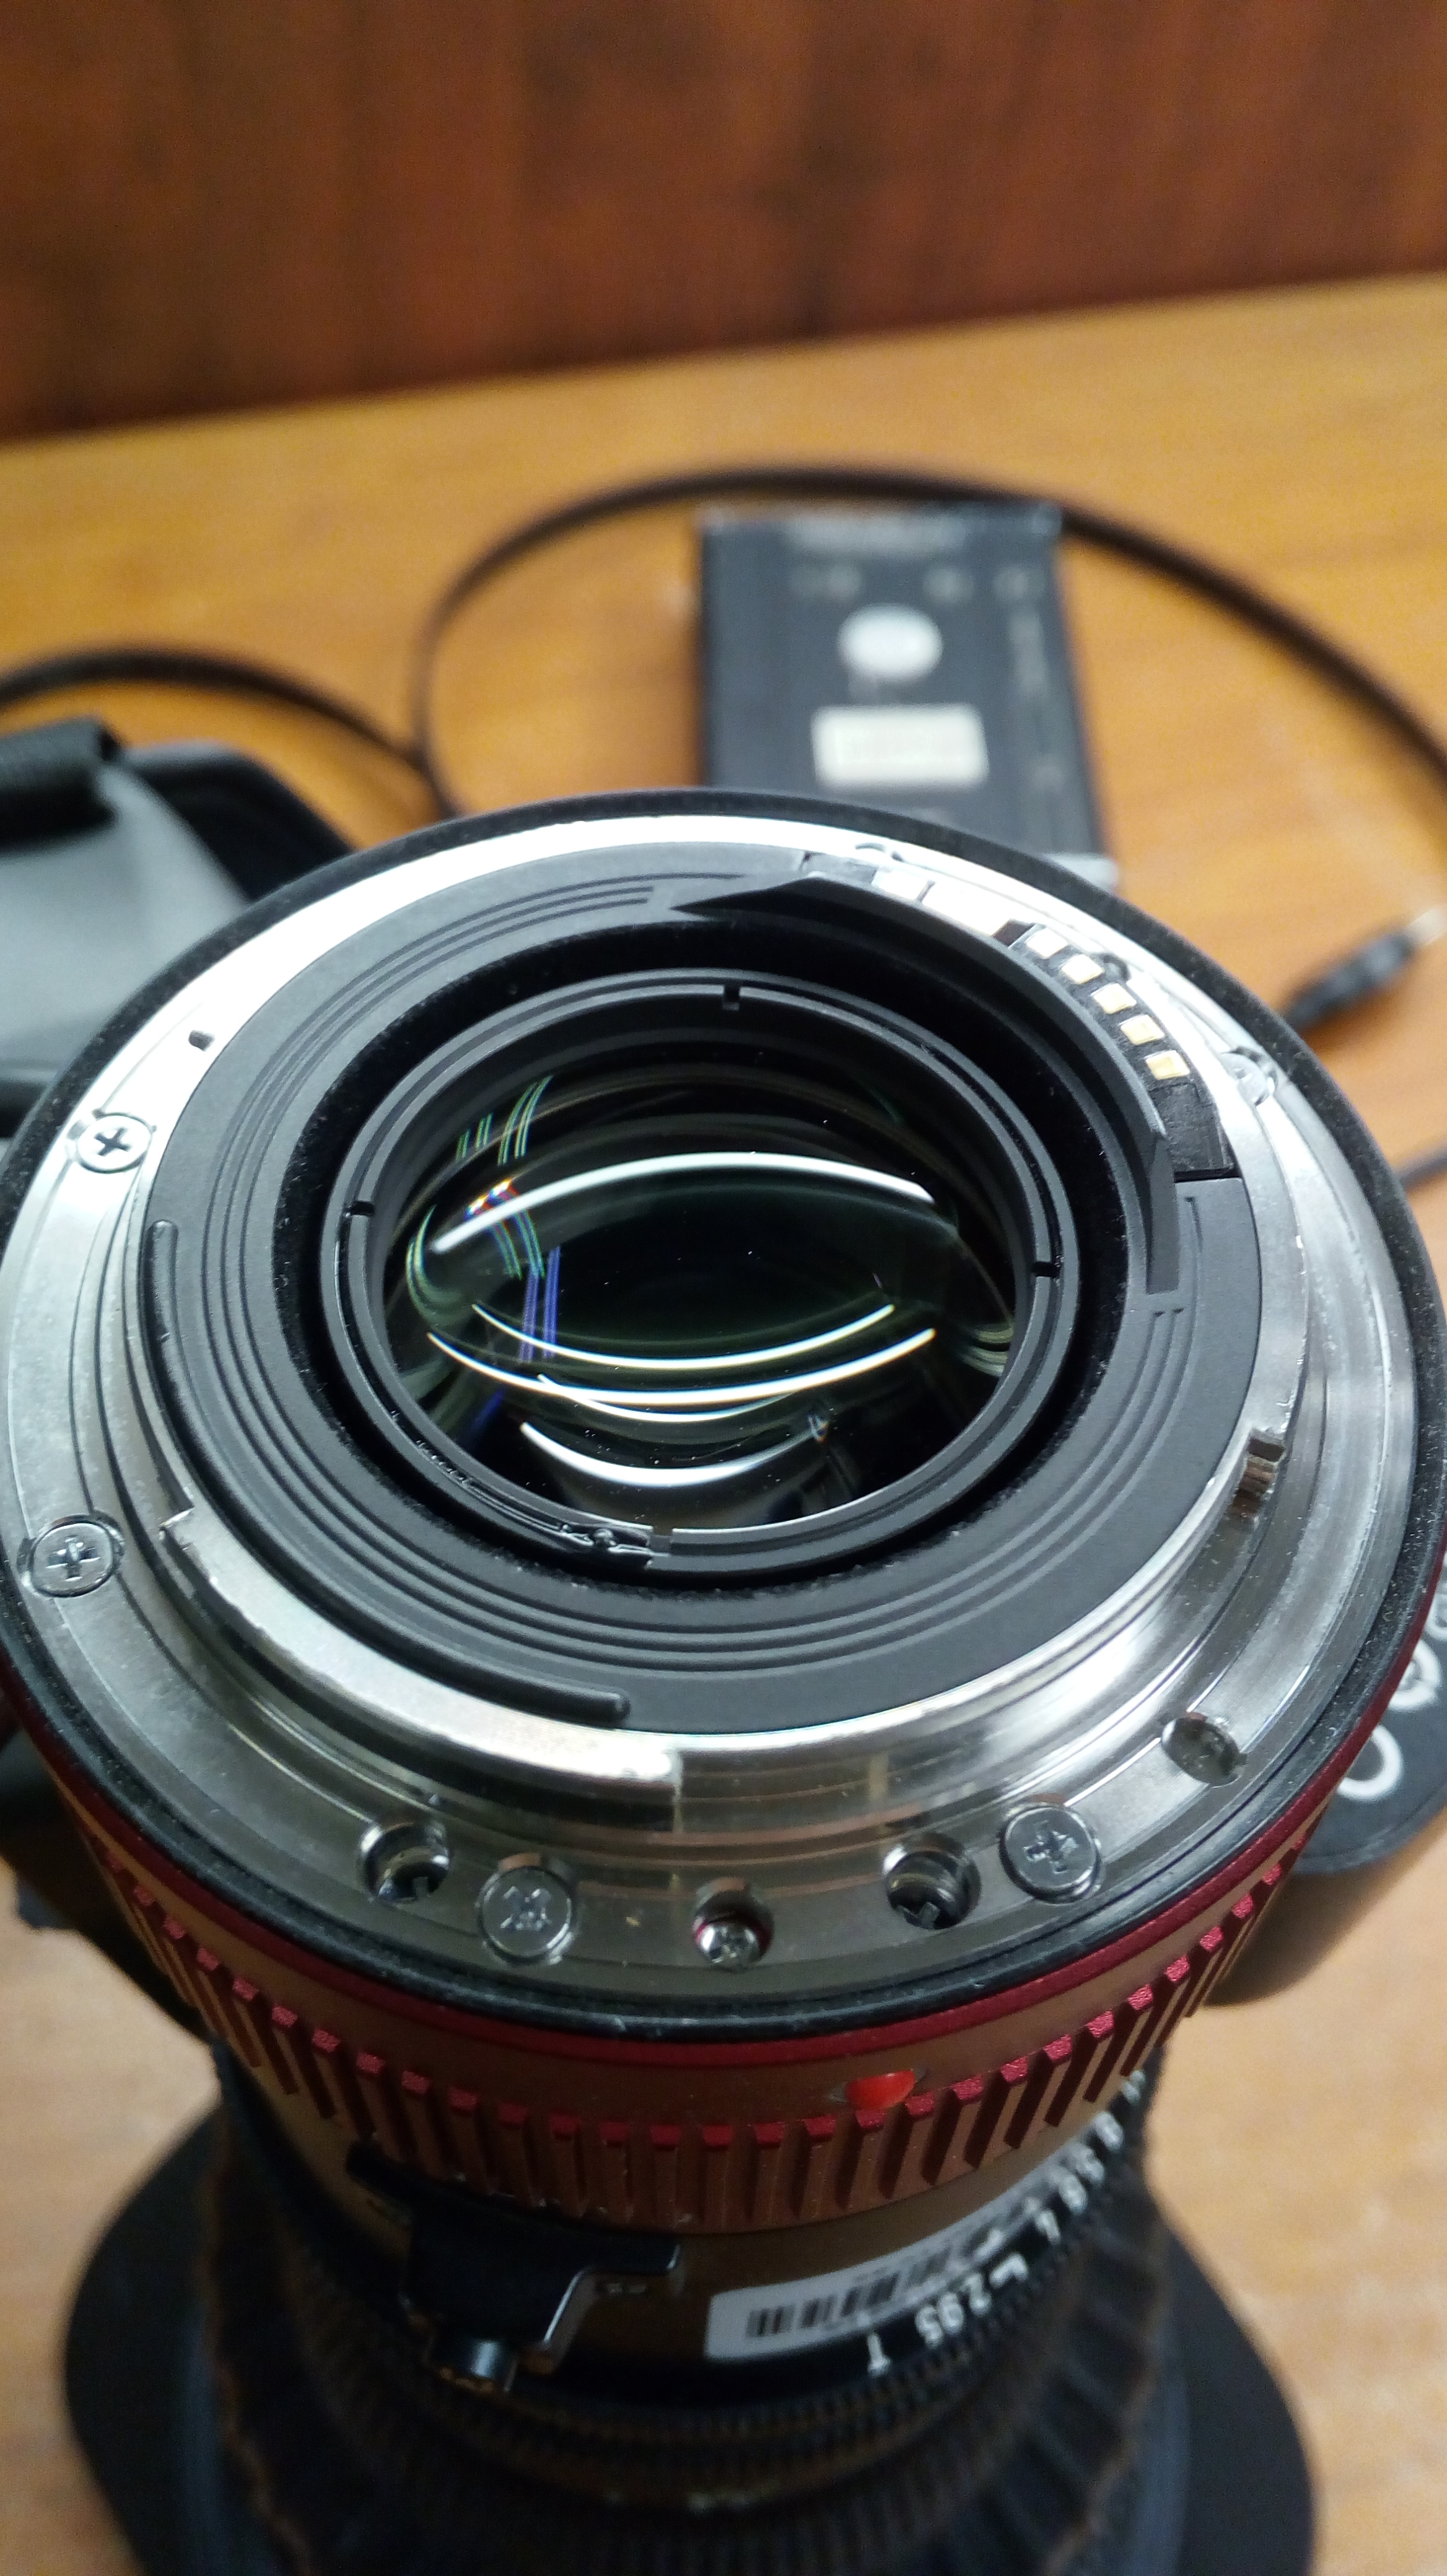 Canon CN7 17-120 Lens - Image #1